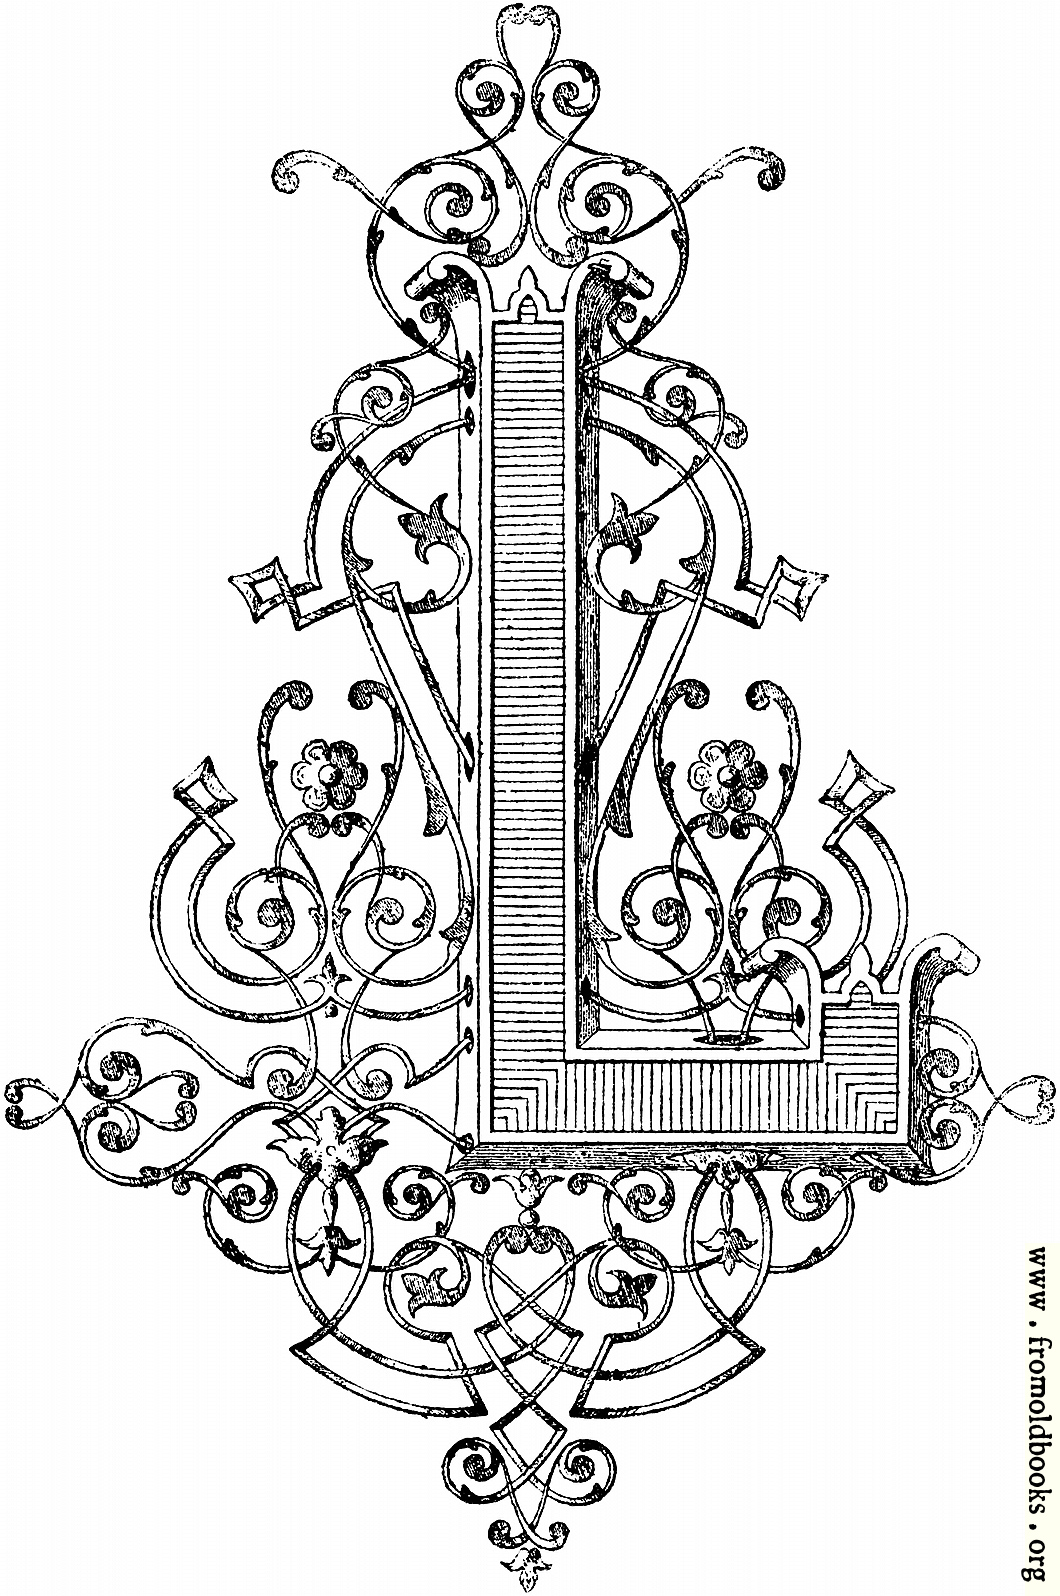 """[Picture: Decorative initial capital letter """"L"""" by Blin]"""